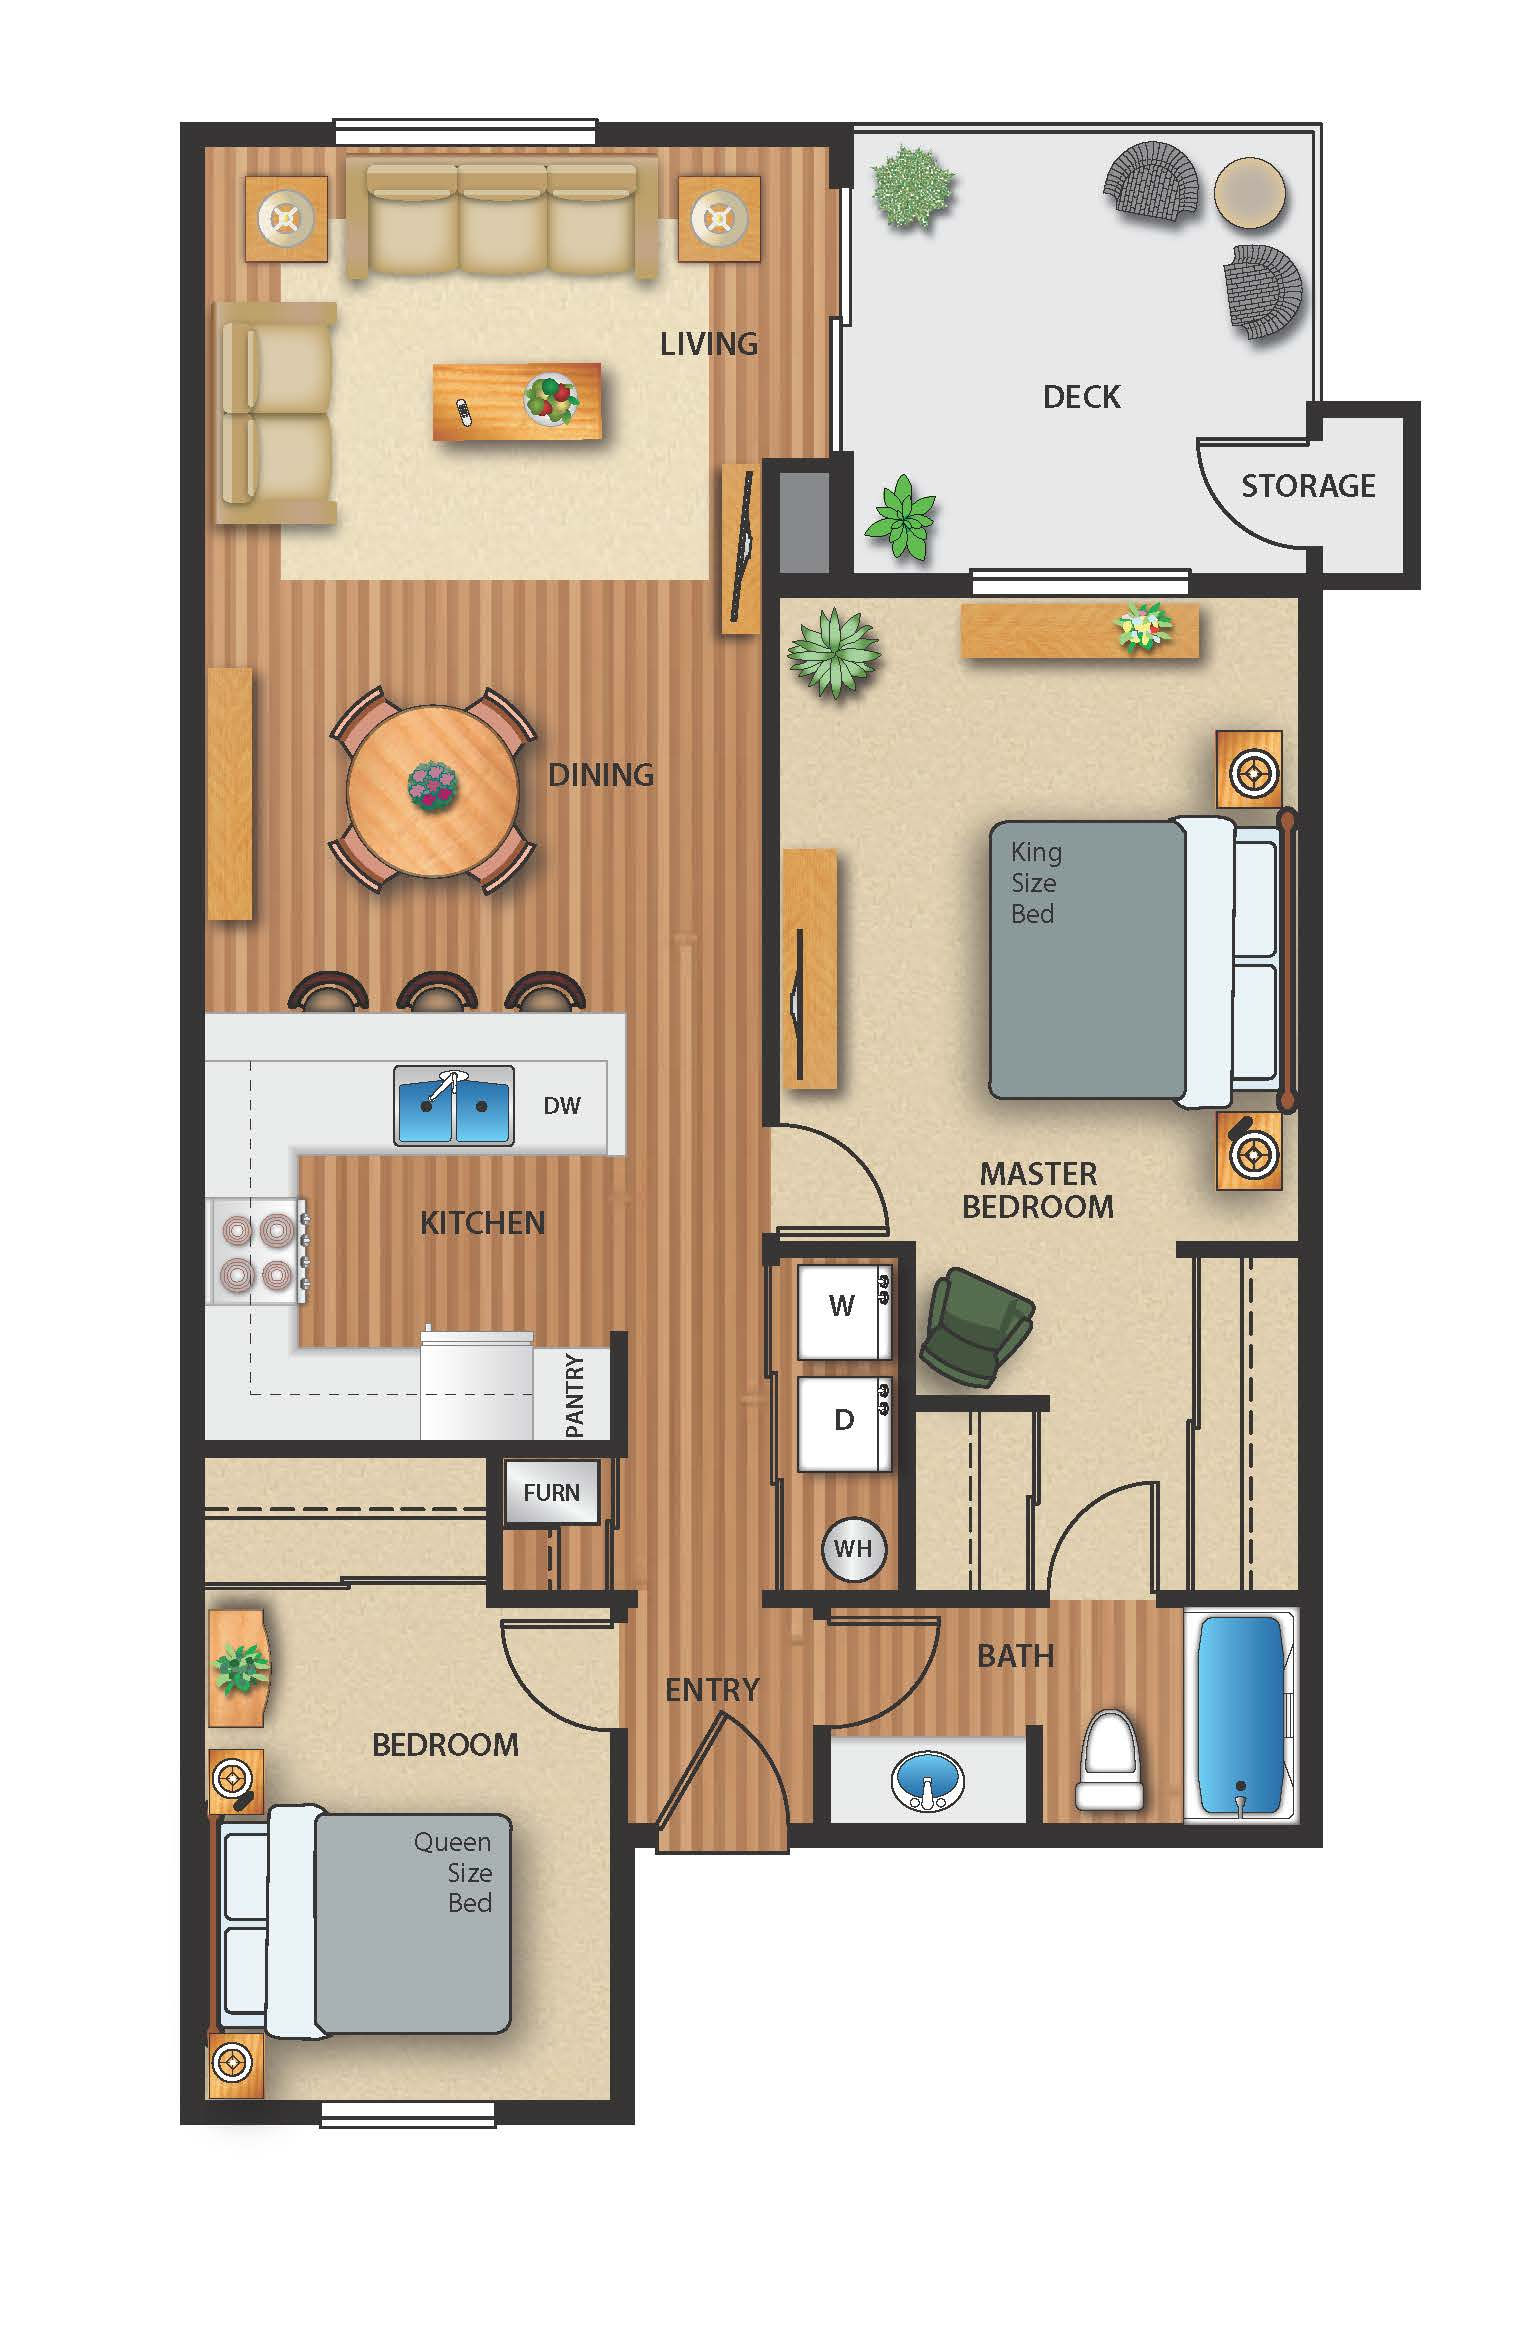 Floor plan image of 2 Bed 1 Bath Marina View